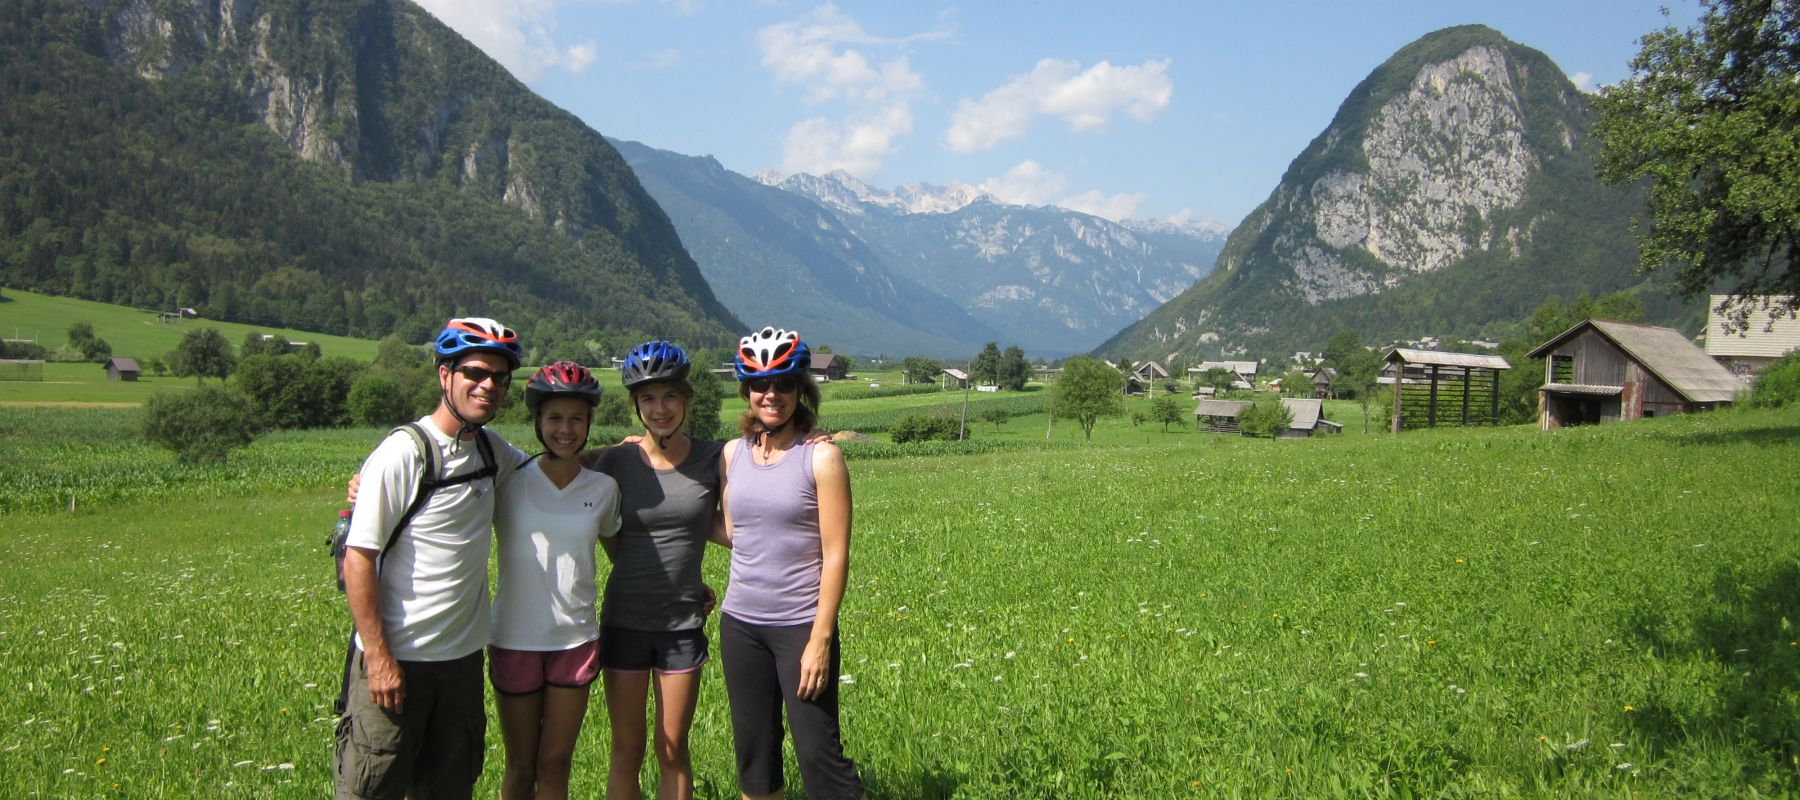 Guided Biking and Hiking Tours Alps Slovenia Lead image 2